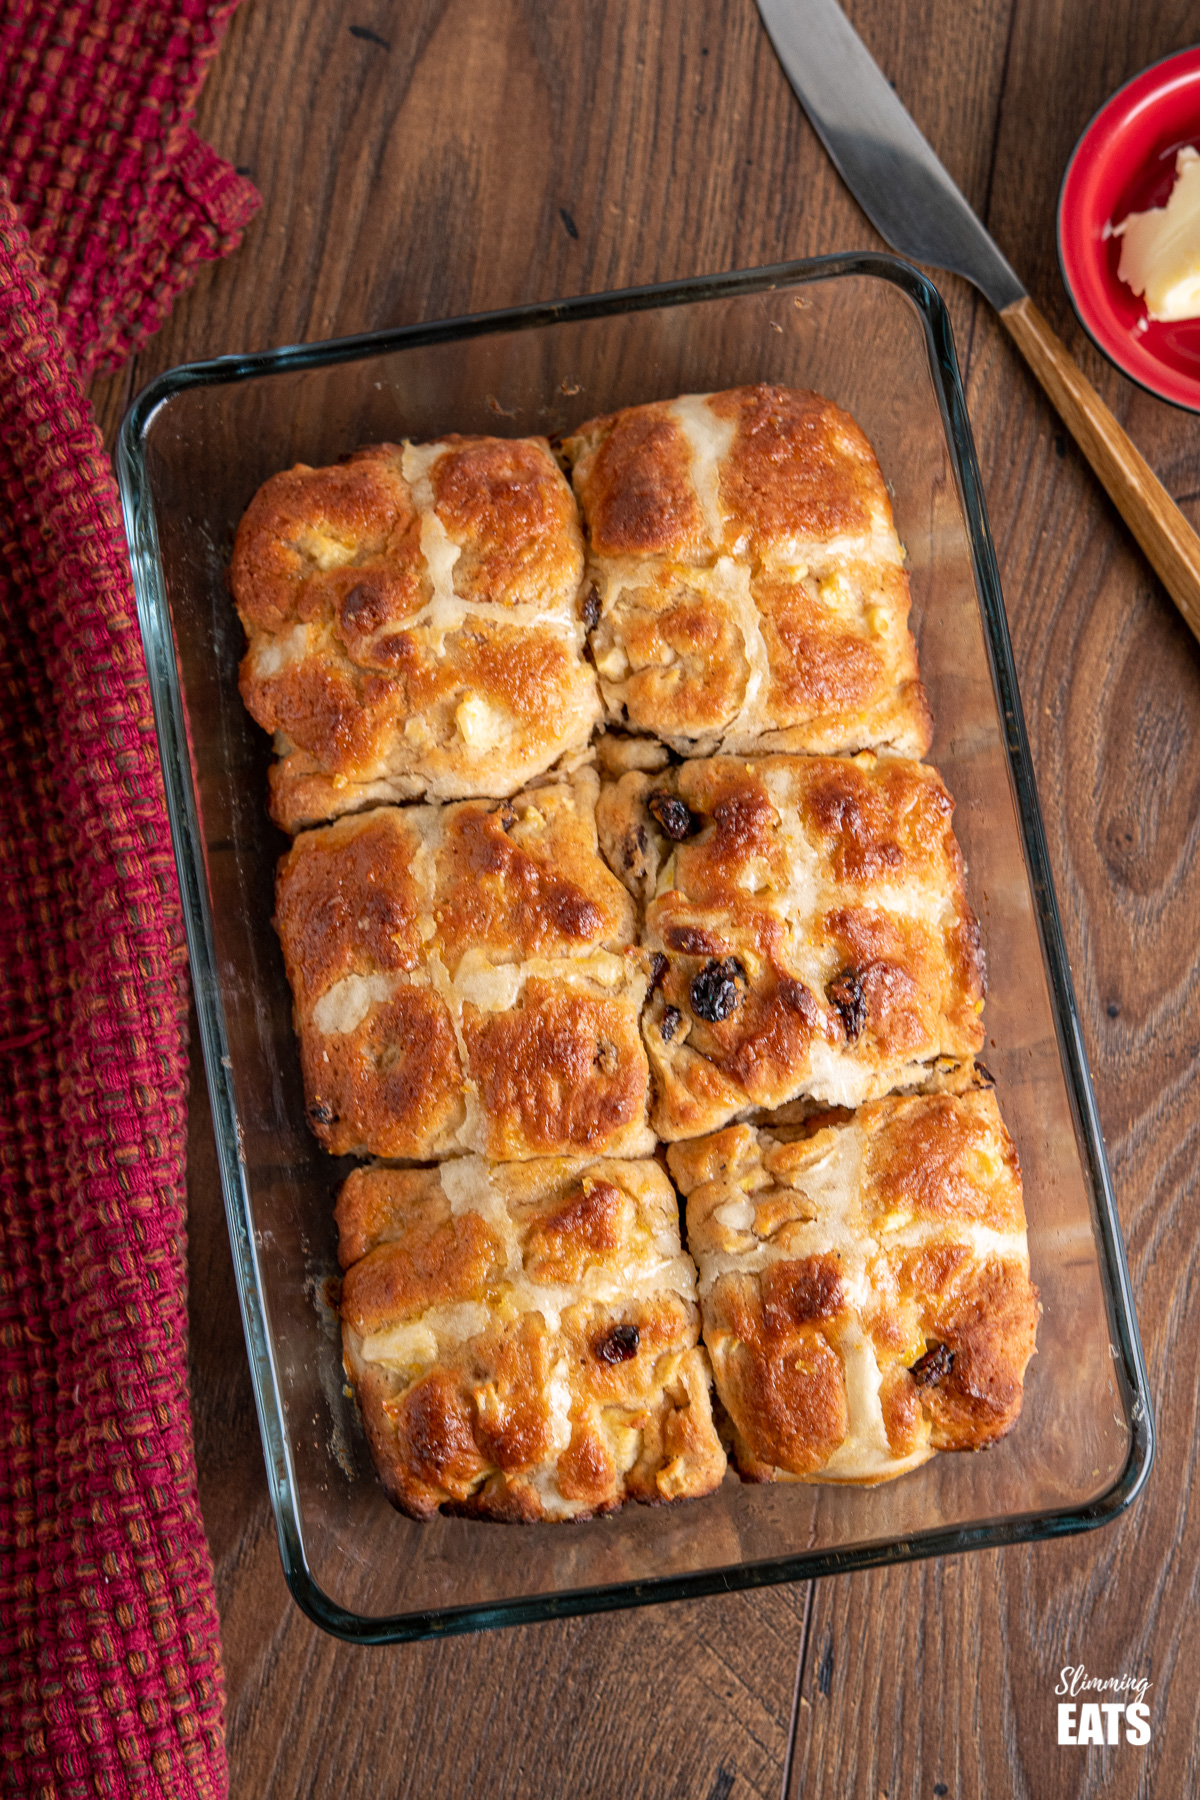 6 hot cross buns in a glass baking dish